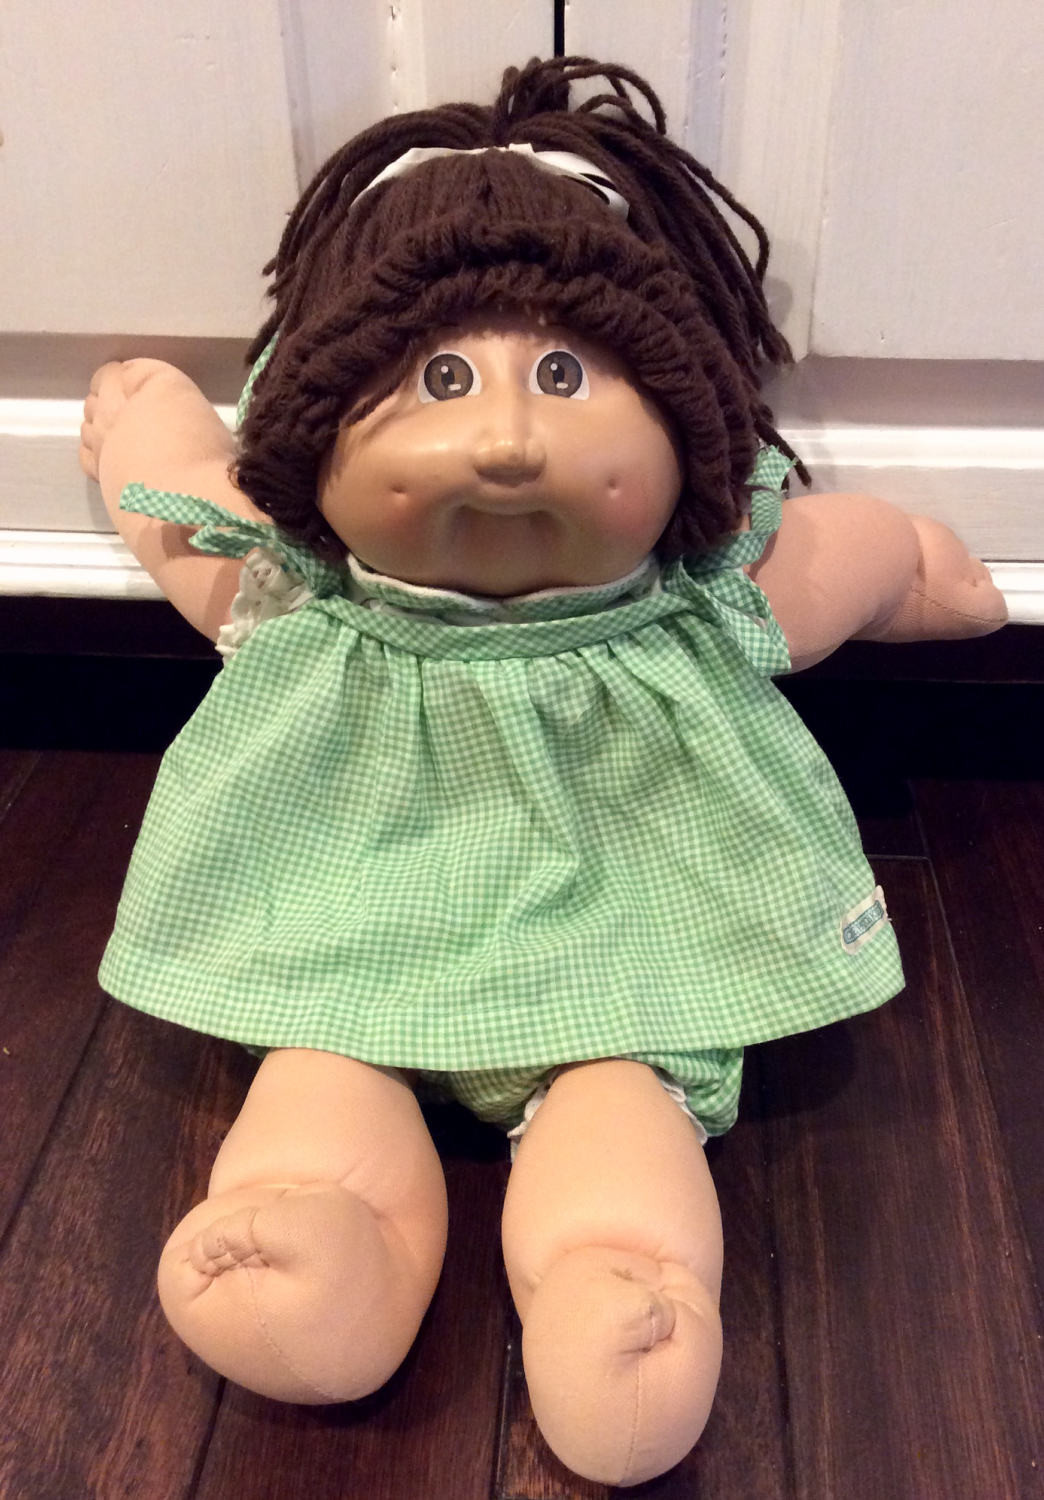 Luxury 1985 Cabbage Patch Kids Coleco Girl Doll Vintage Cabbage Cabbage Patch Kids for Sale Of Marvelous 47 Pics Cabbage Patch Kids for Sale